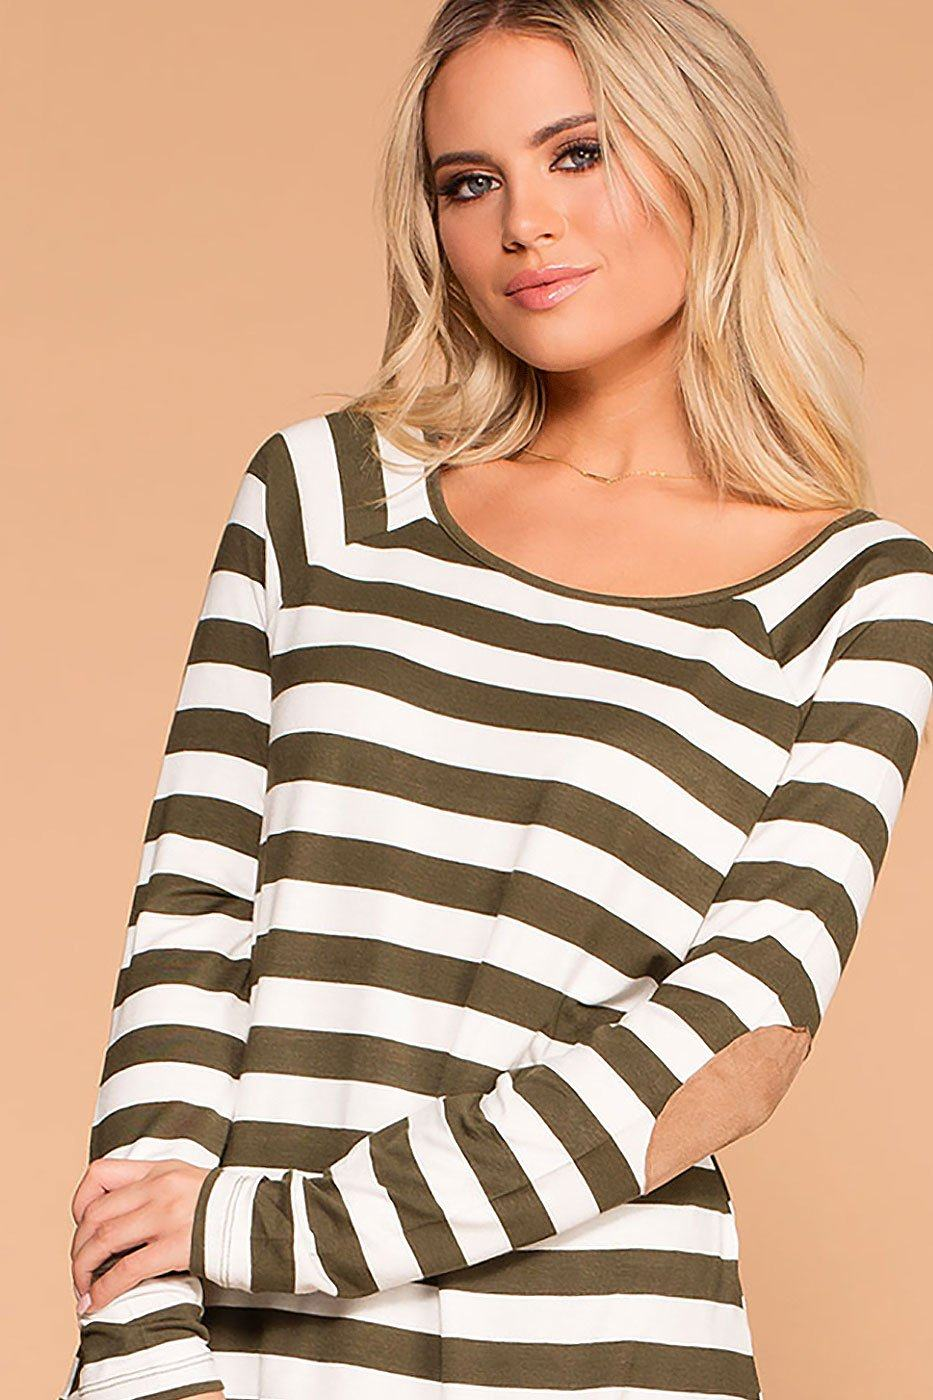 Callie Olive Striped Elbow Patch Top | Zenana